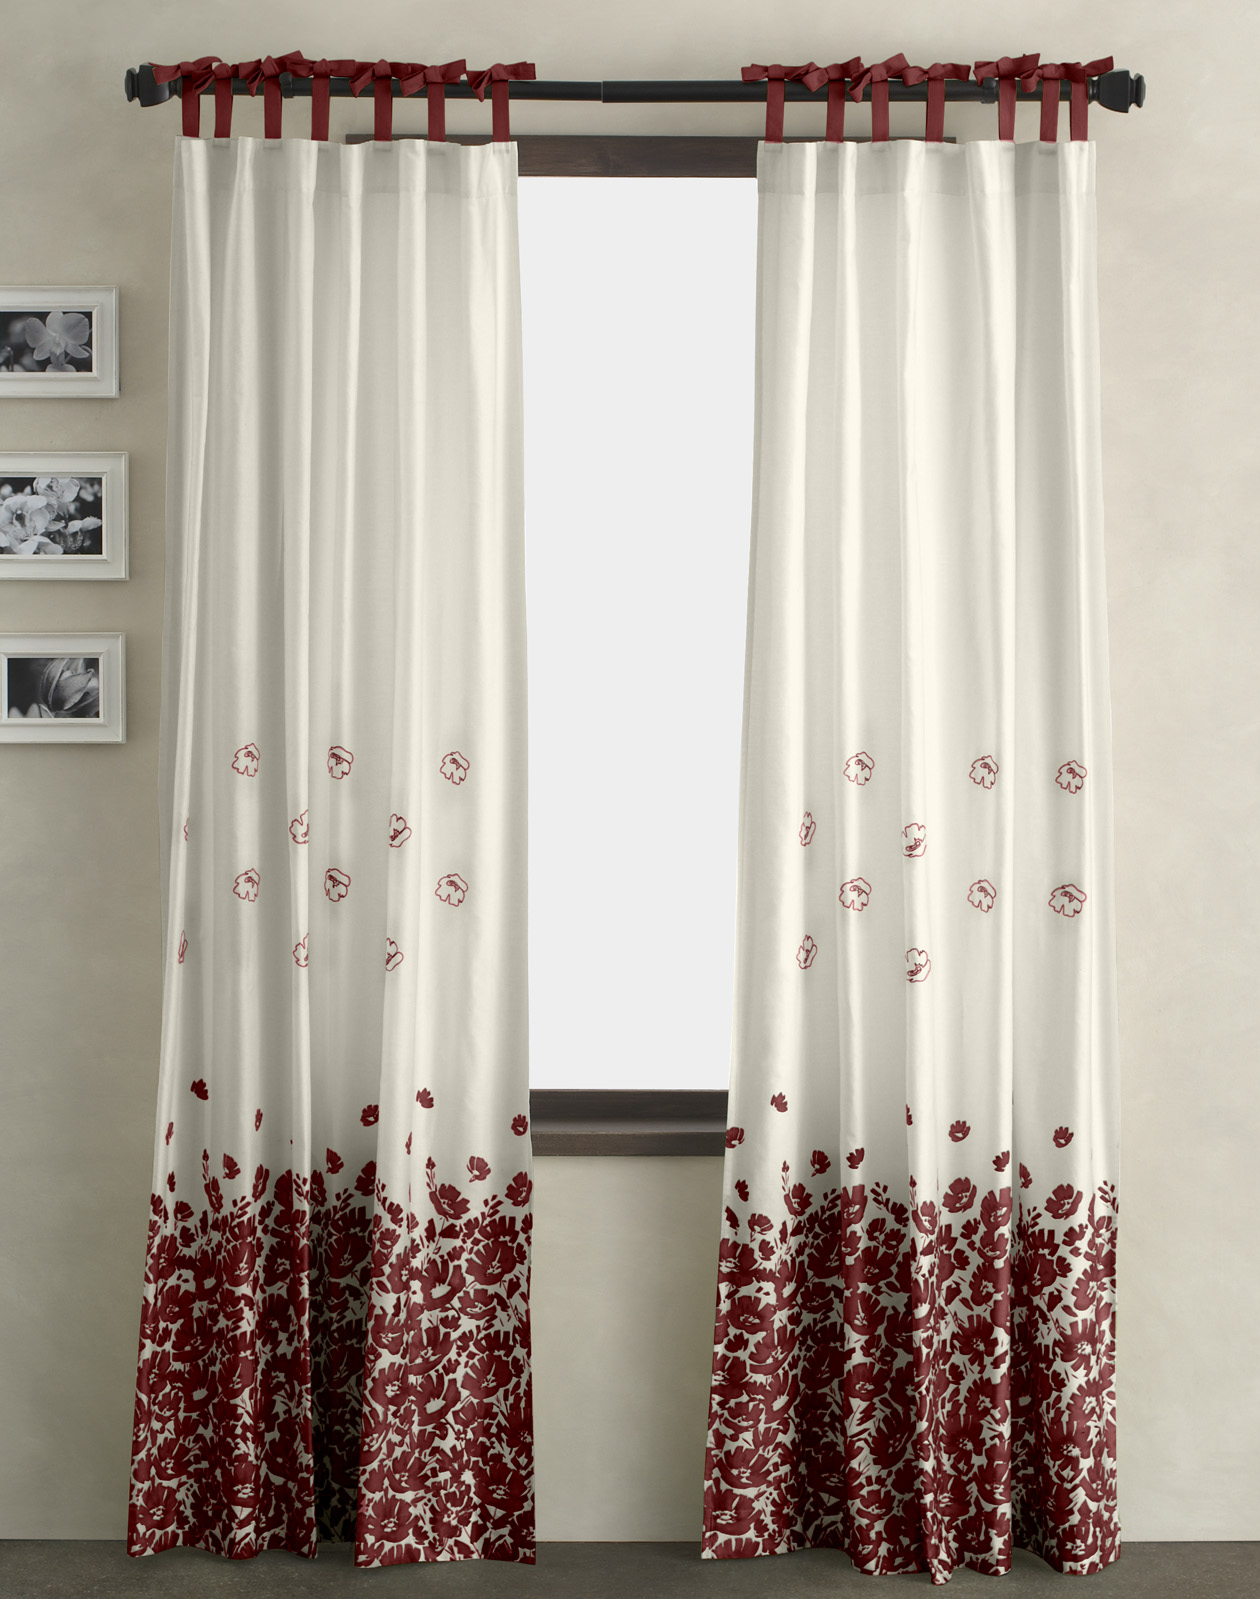 Inside house windows with curtains - 64 Best Images About Cirtains On Pinterest Window Treatments